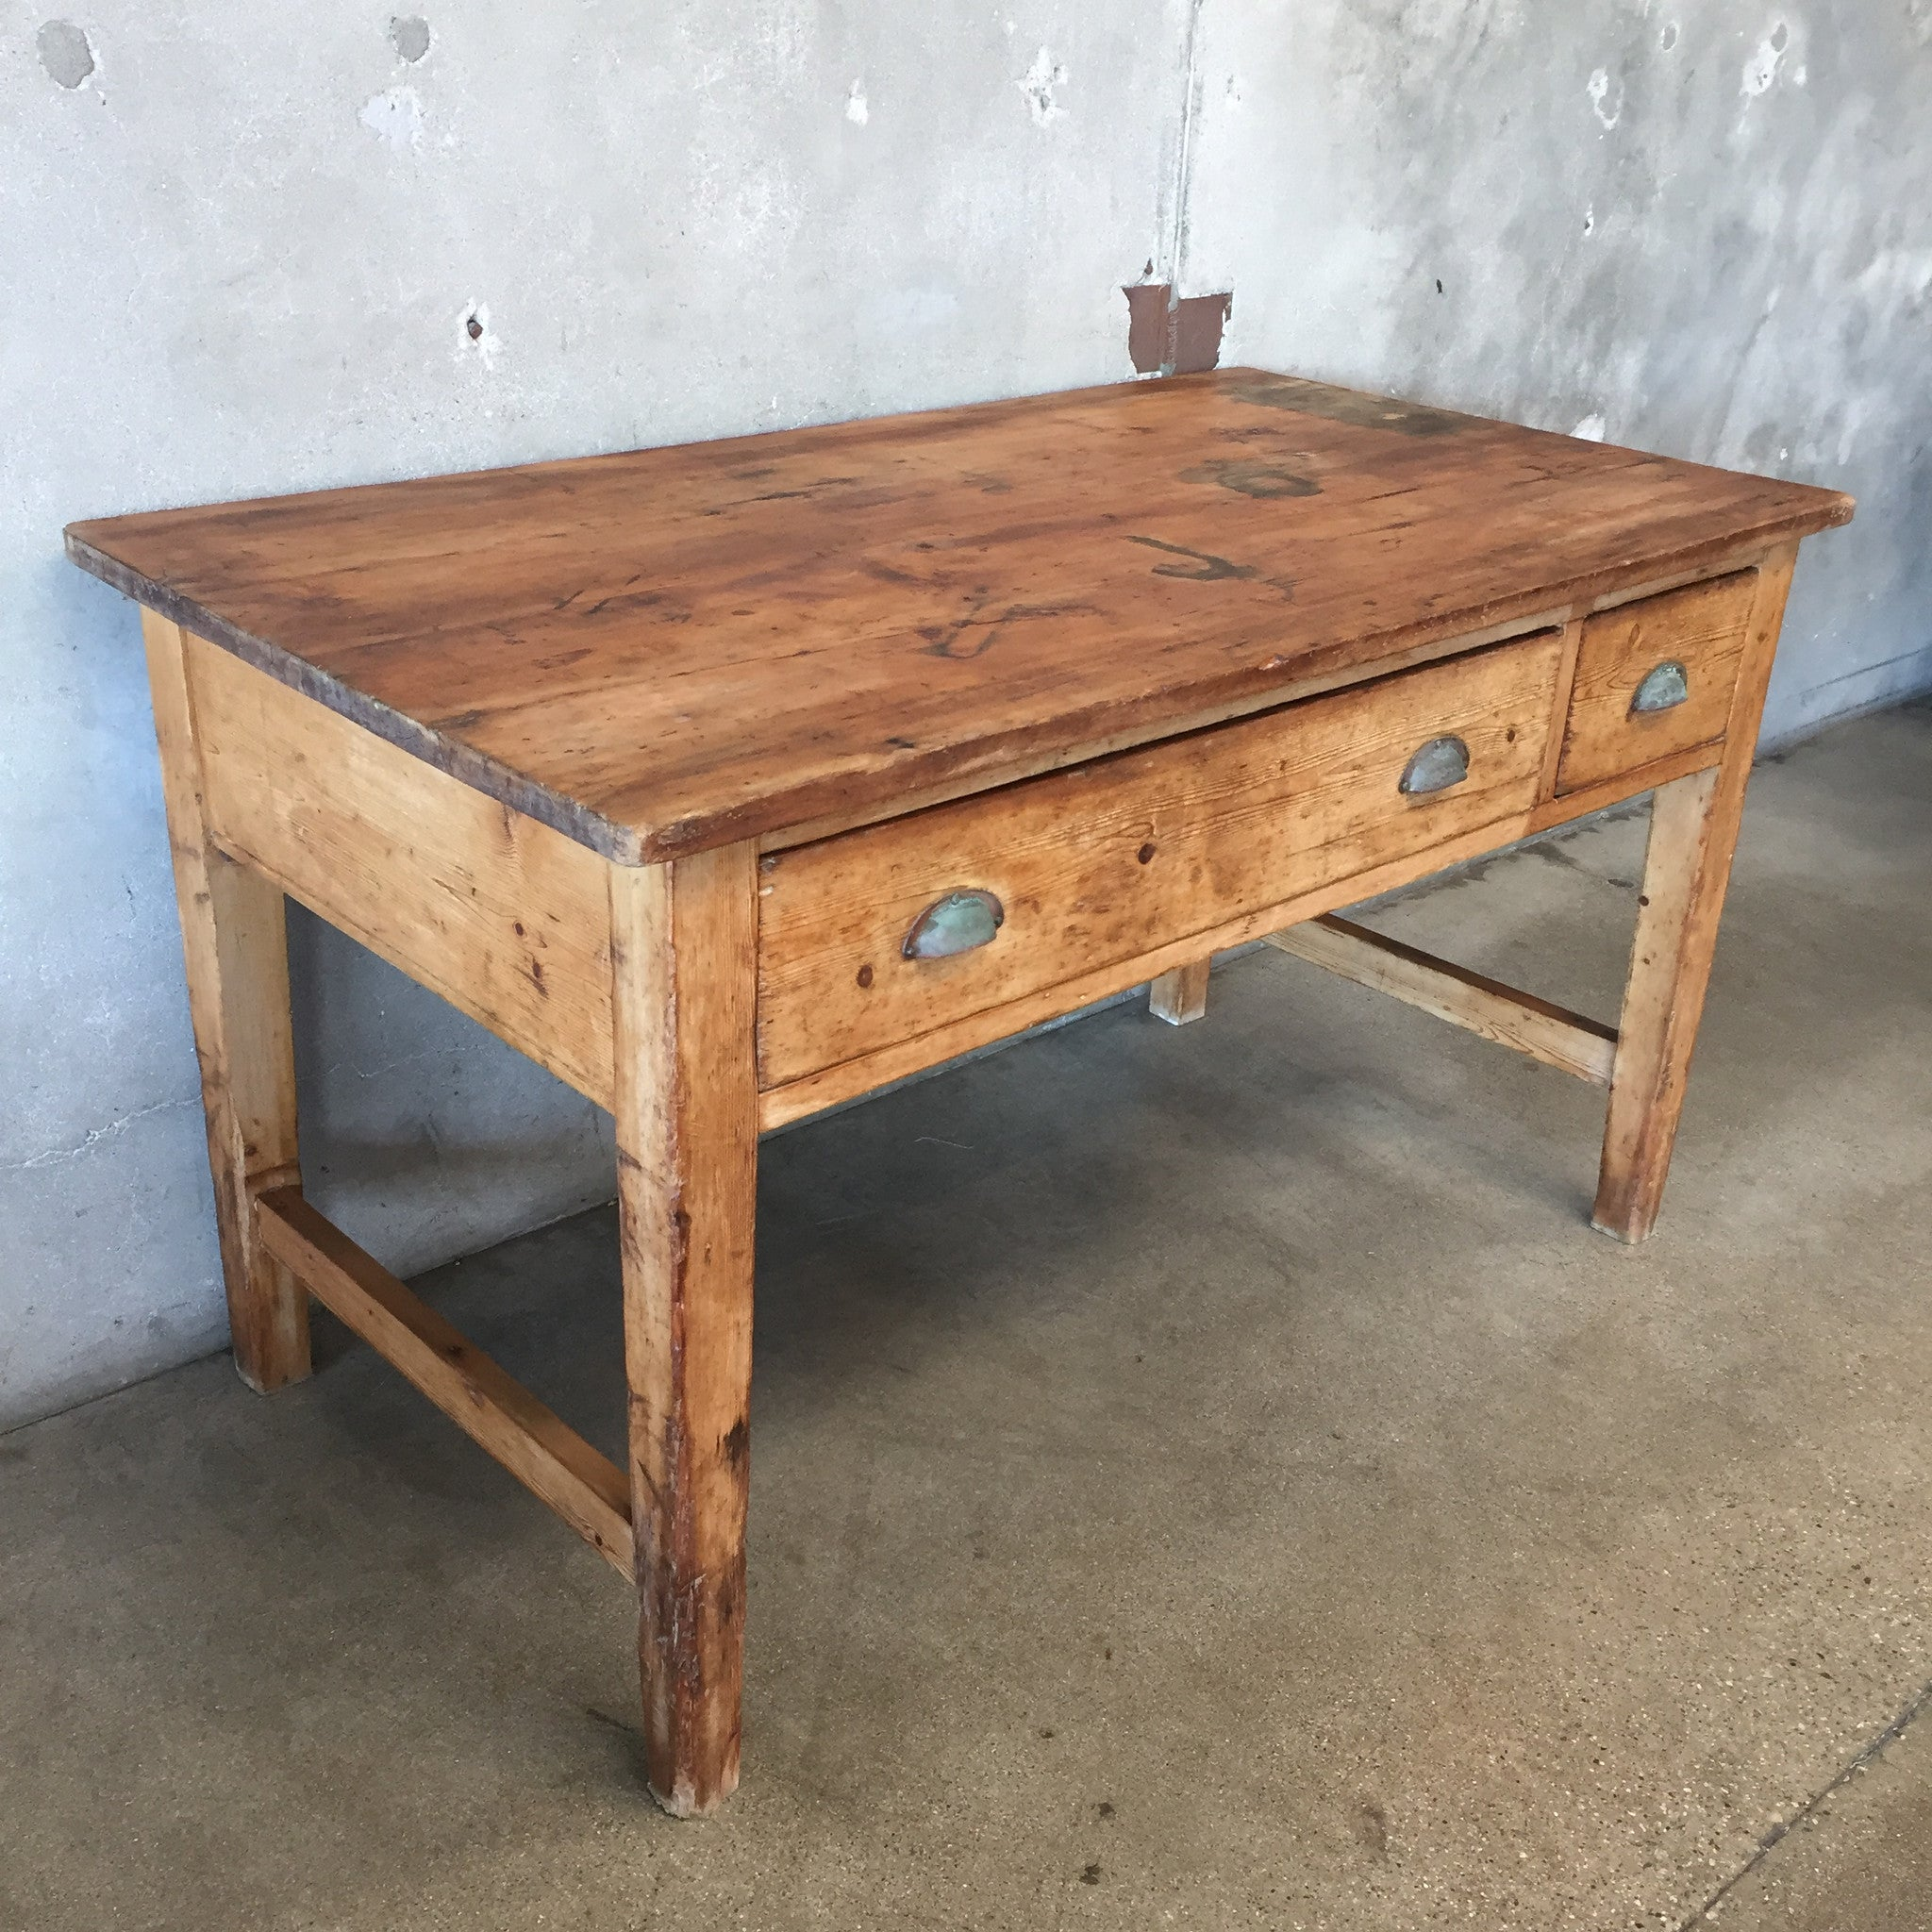 Antique Farm Table Antique Farm Table Antique Farm Table ...